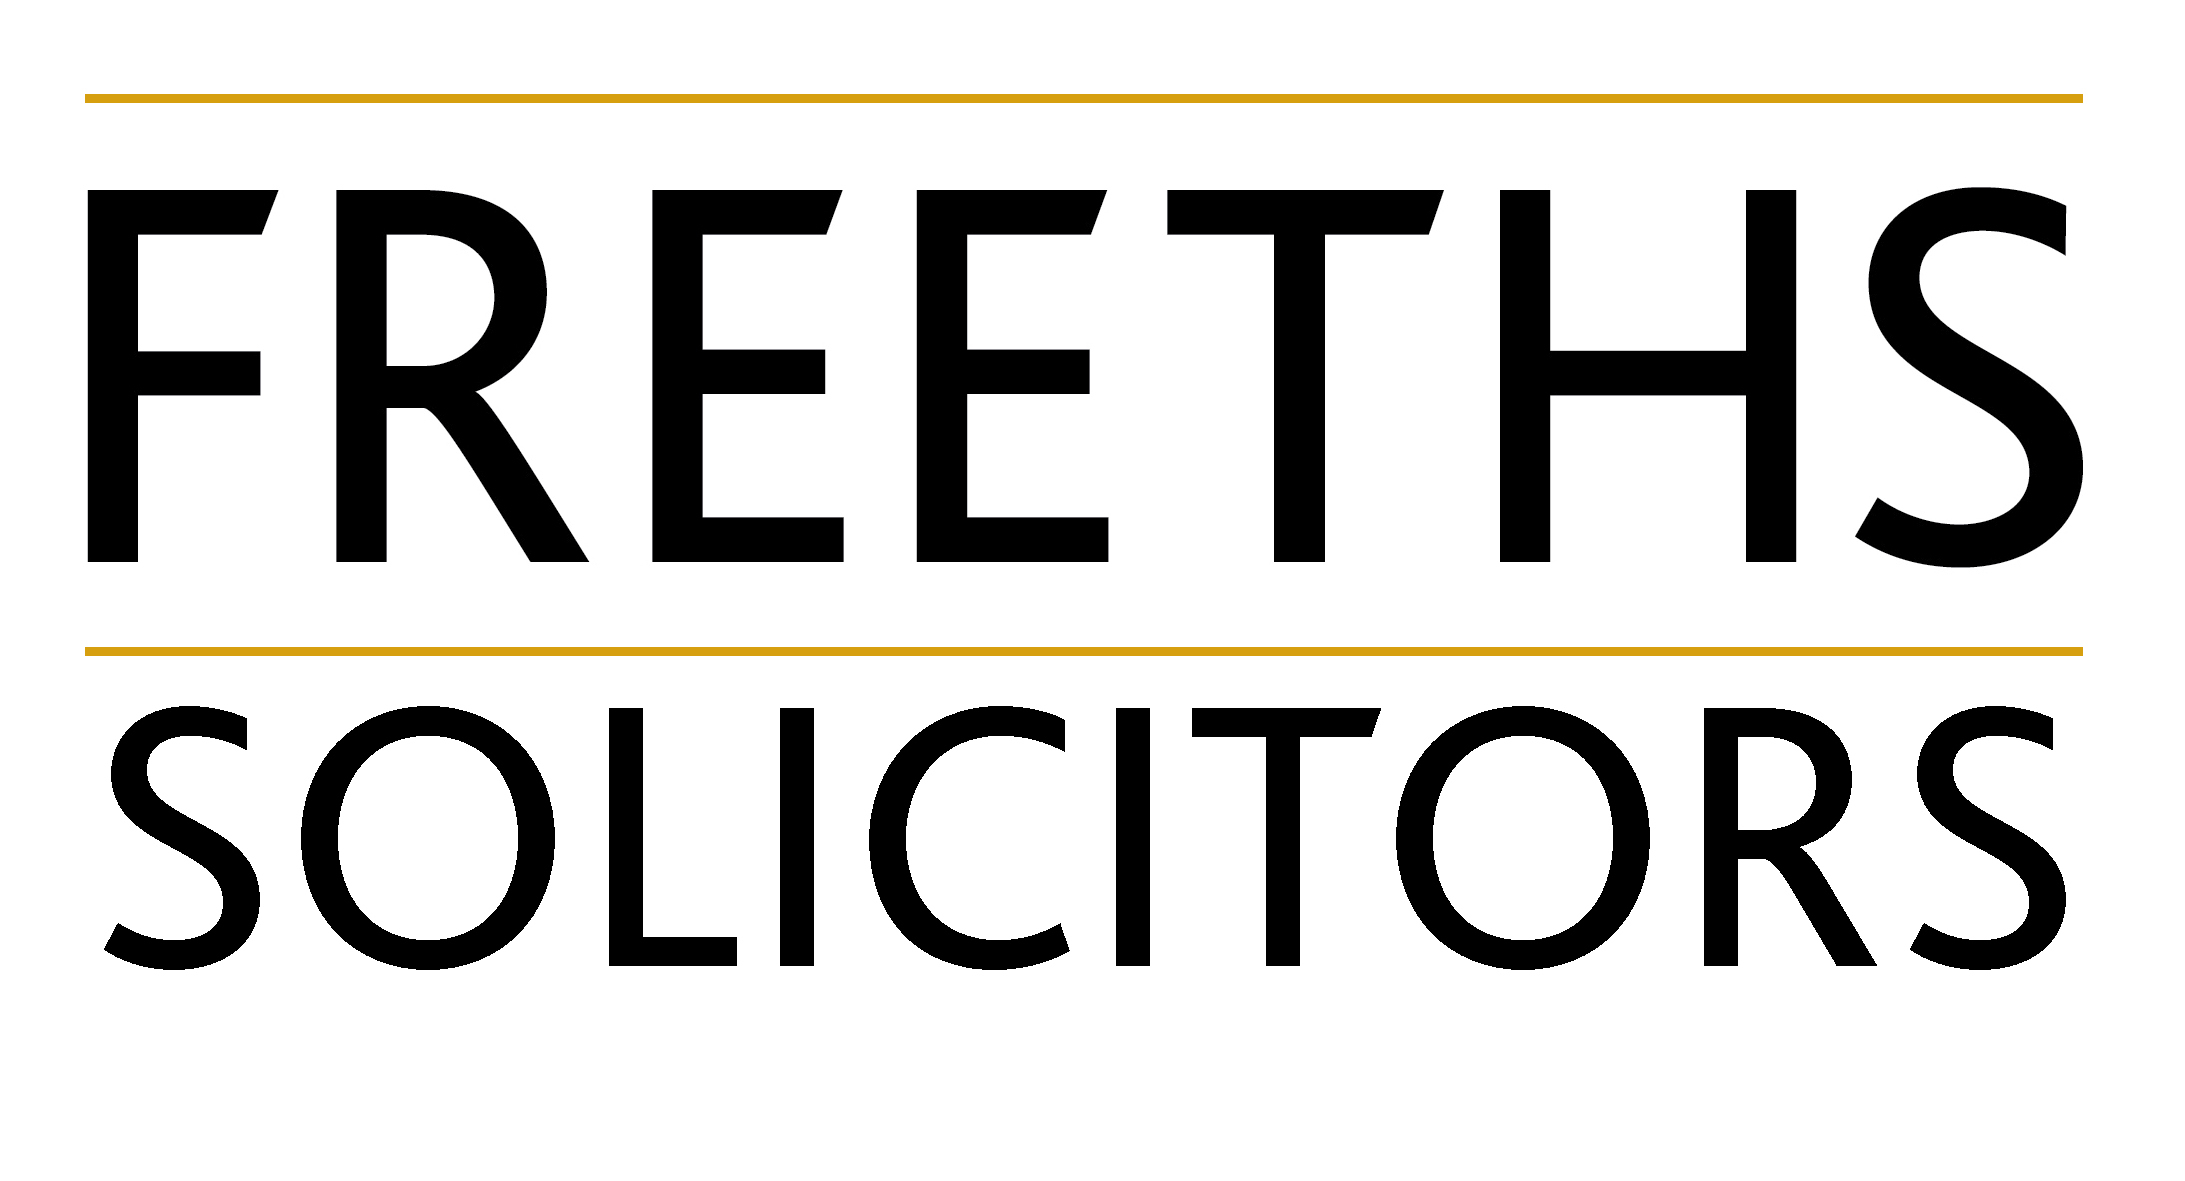 FREETHS SOLICITORS logo